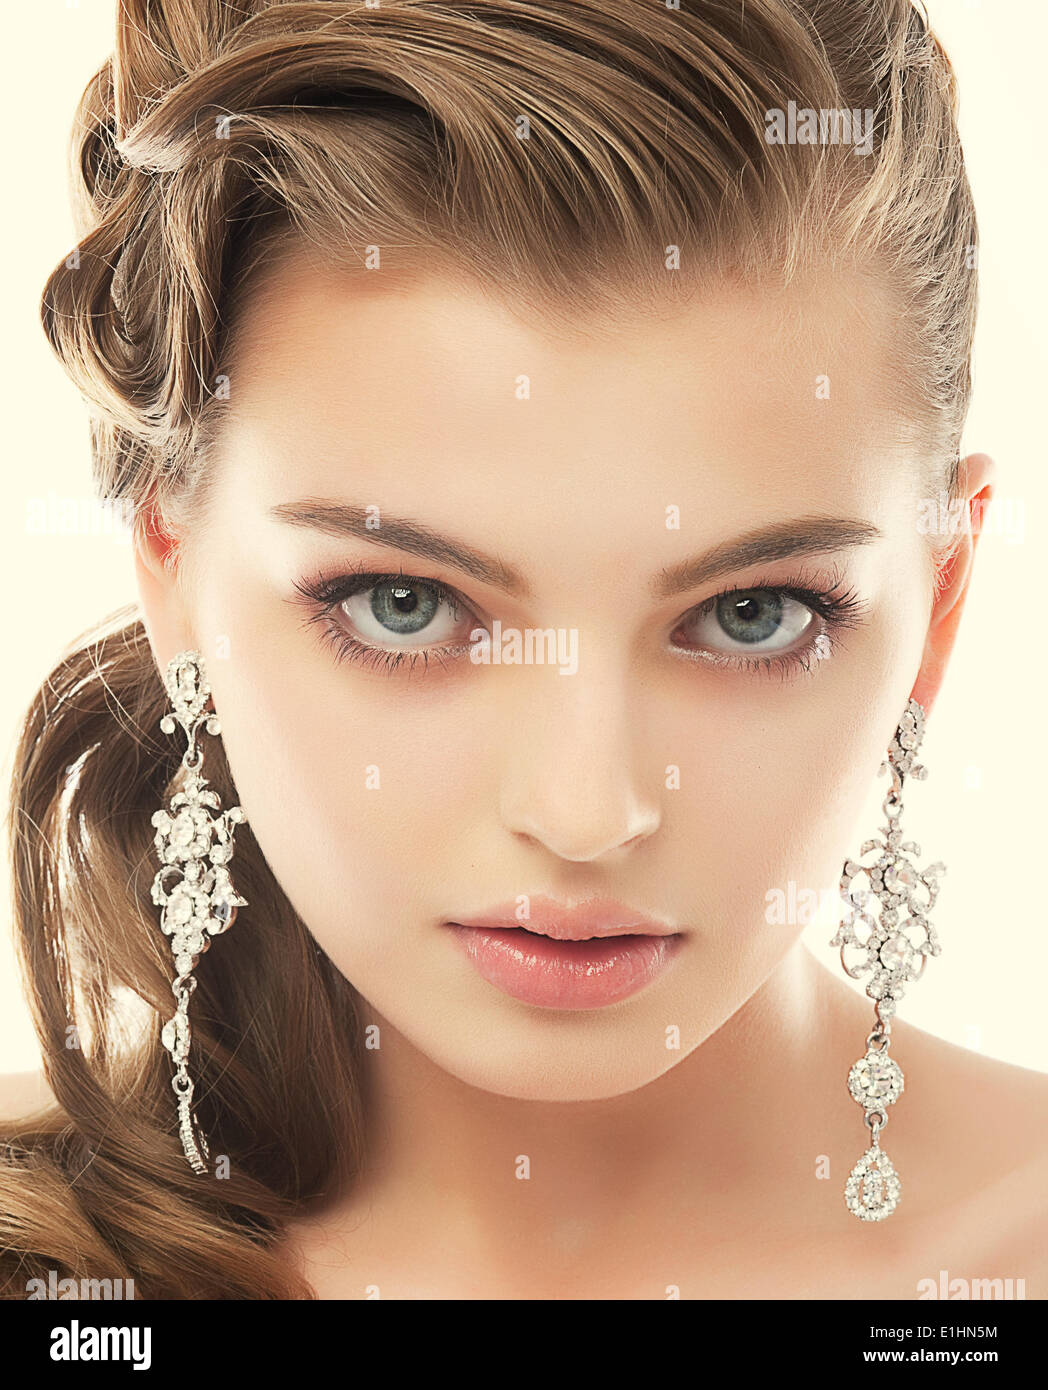 Jewelry. Portrait of Gorgeous Exquisite Woman with Shiny Earrings. Refinement - Stock Image